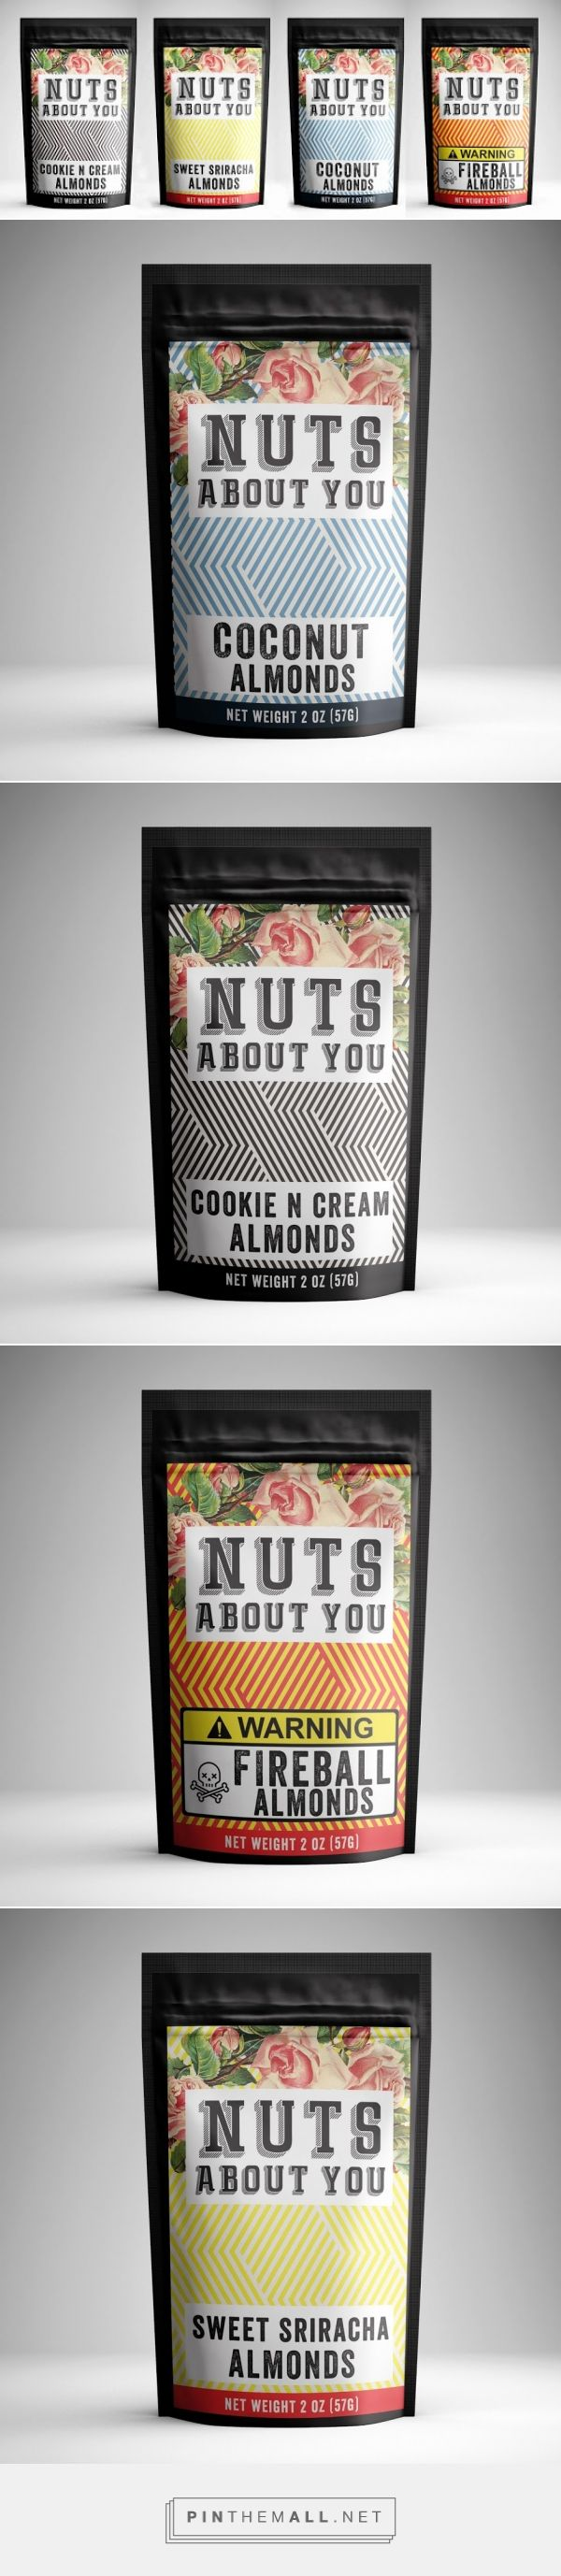 Addictive Flavored Almond Packaging by Nuts About You | Fivestar Branding Agency – Design and Branding Agency & Curated Inspiration Gallery